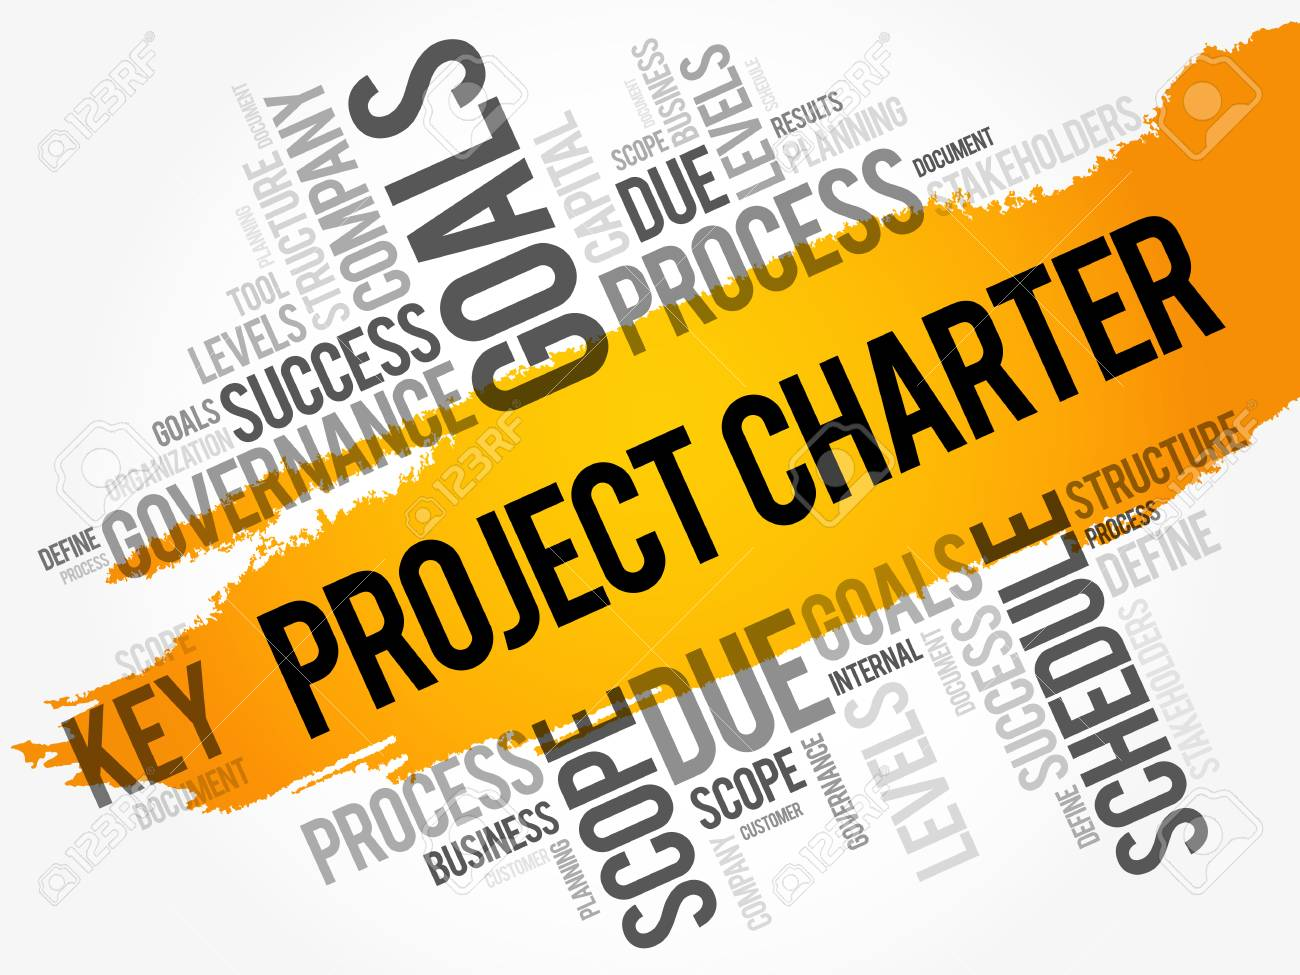 Project Charter word cloud collage, business terms such as method, process, leads concept background - 91111207